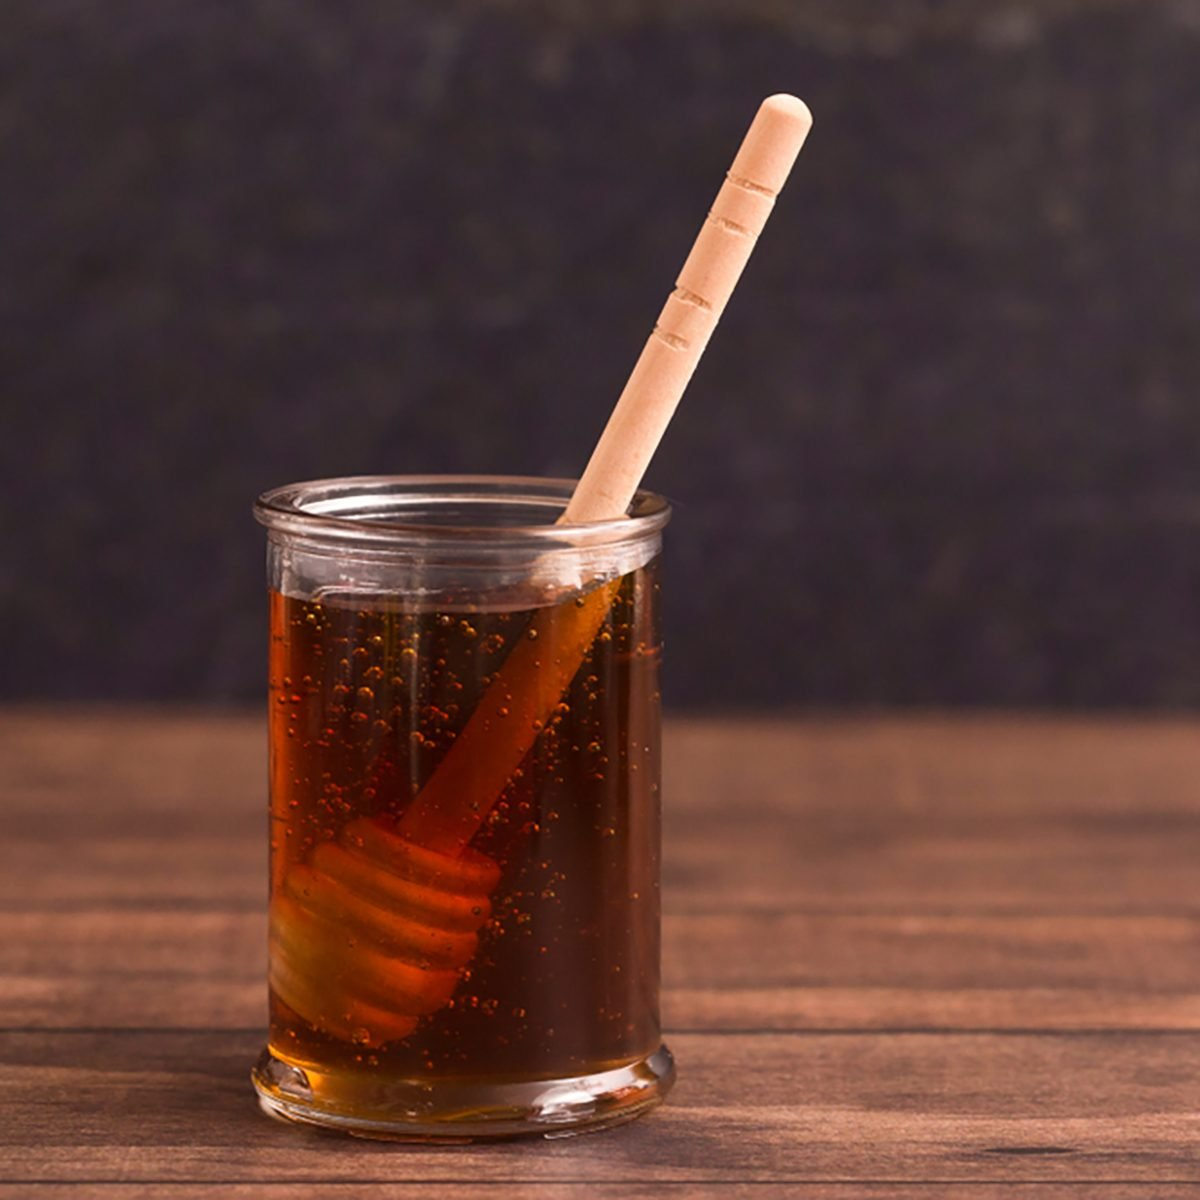 Cooking with Honey, Honey in a Glass Jar